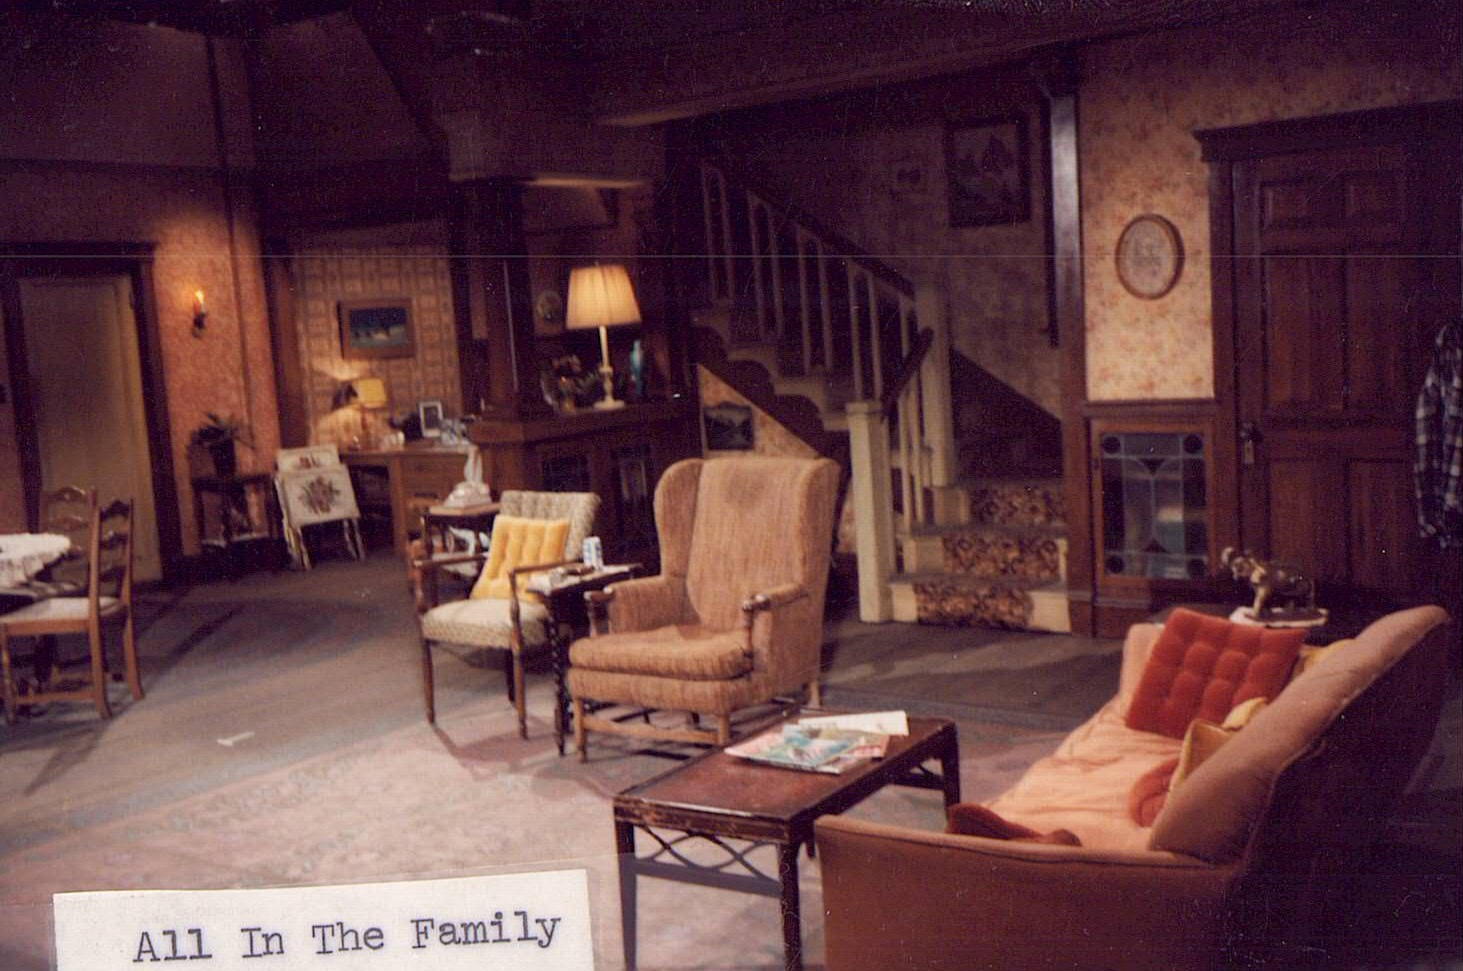 set-jetter & movie locations and more: all in the family